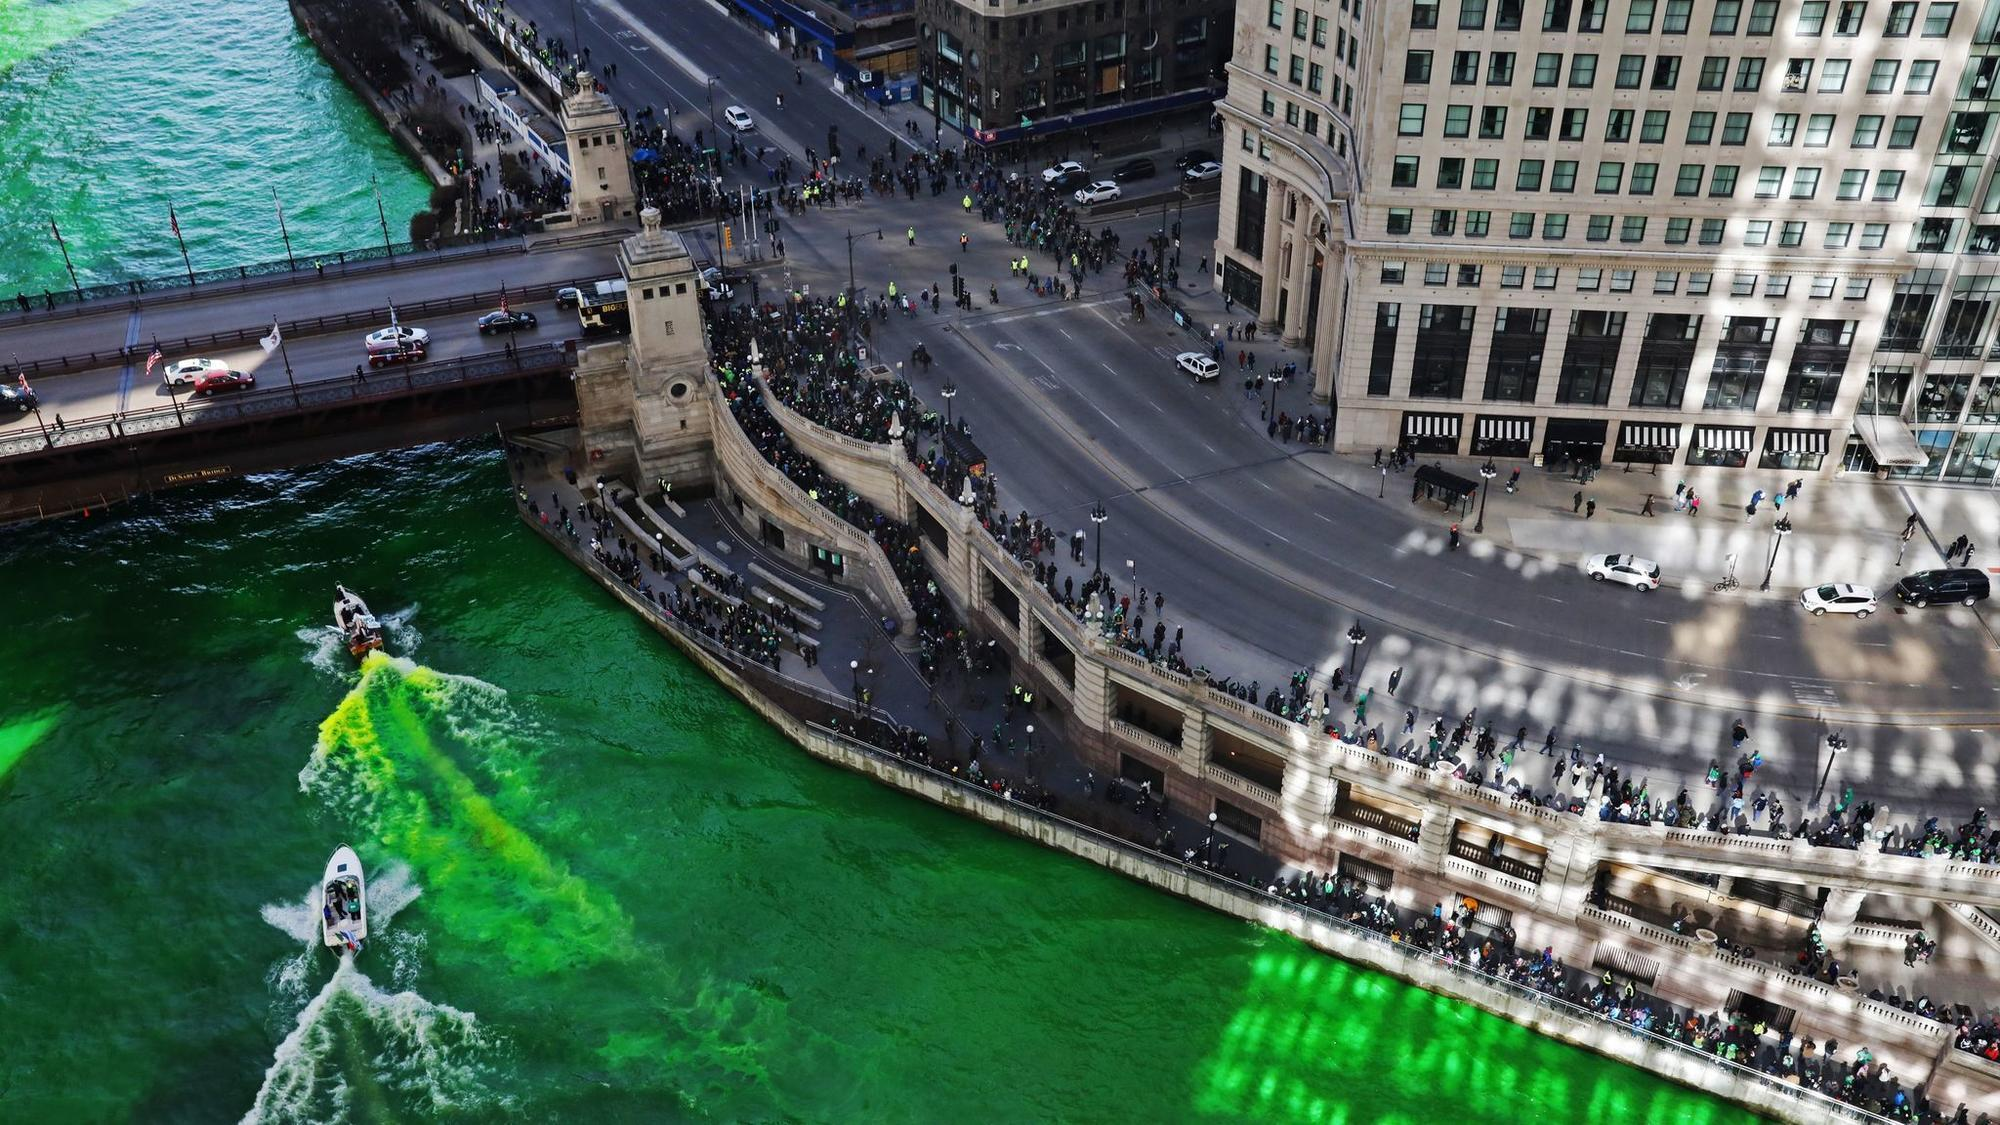 St. Patrick's Day is more than green beer and rivers — talking to Irish Chicagoans about finding meaning in the day